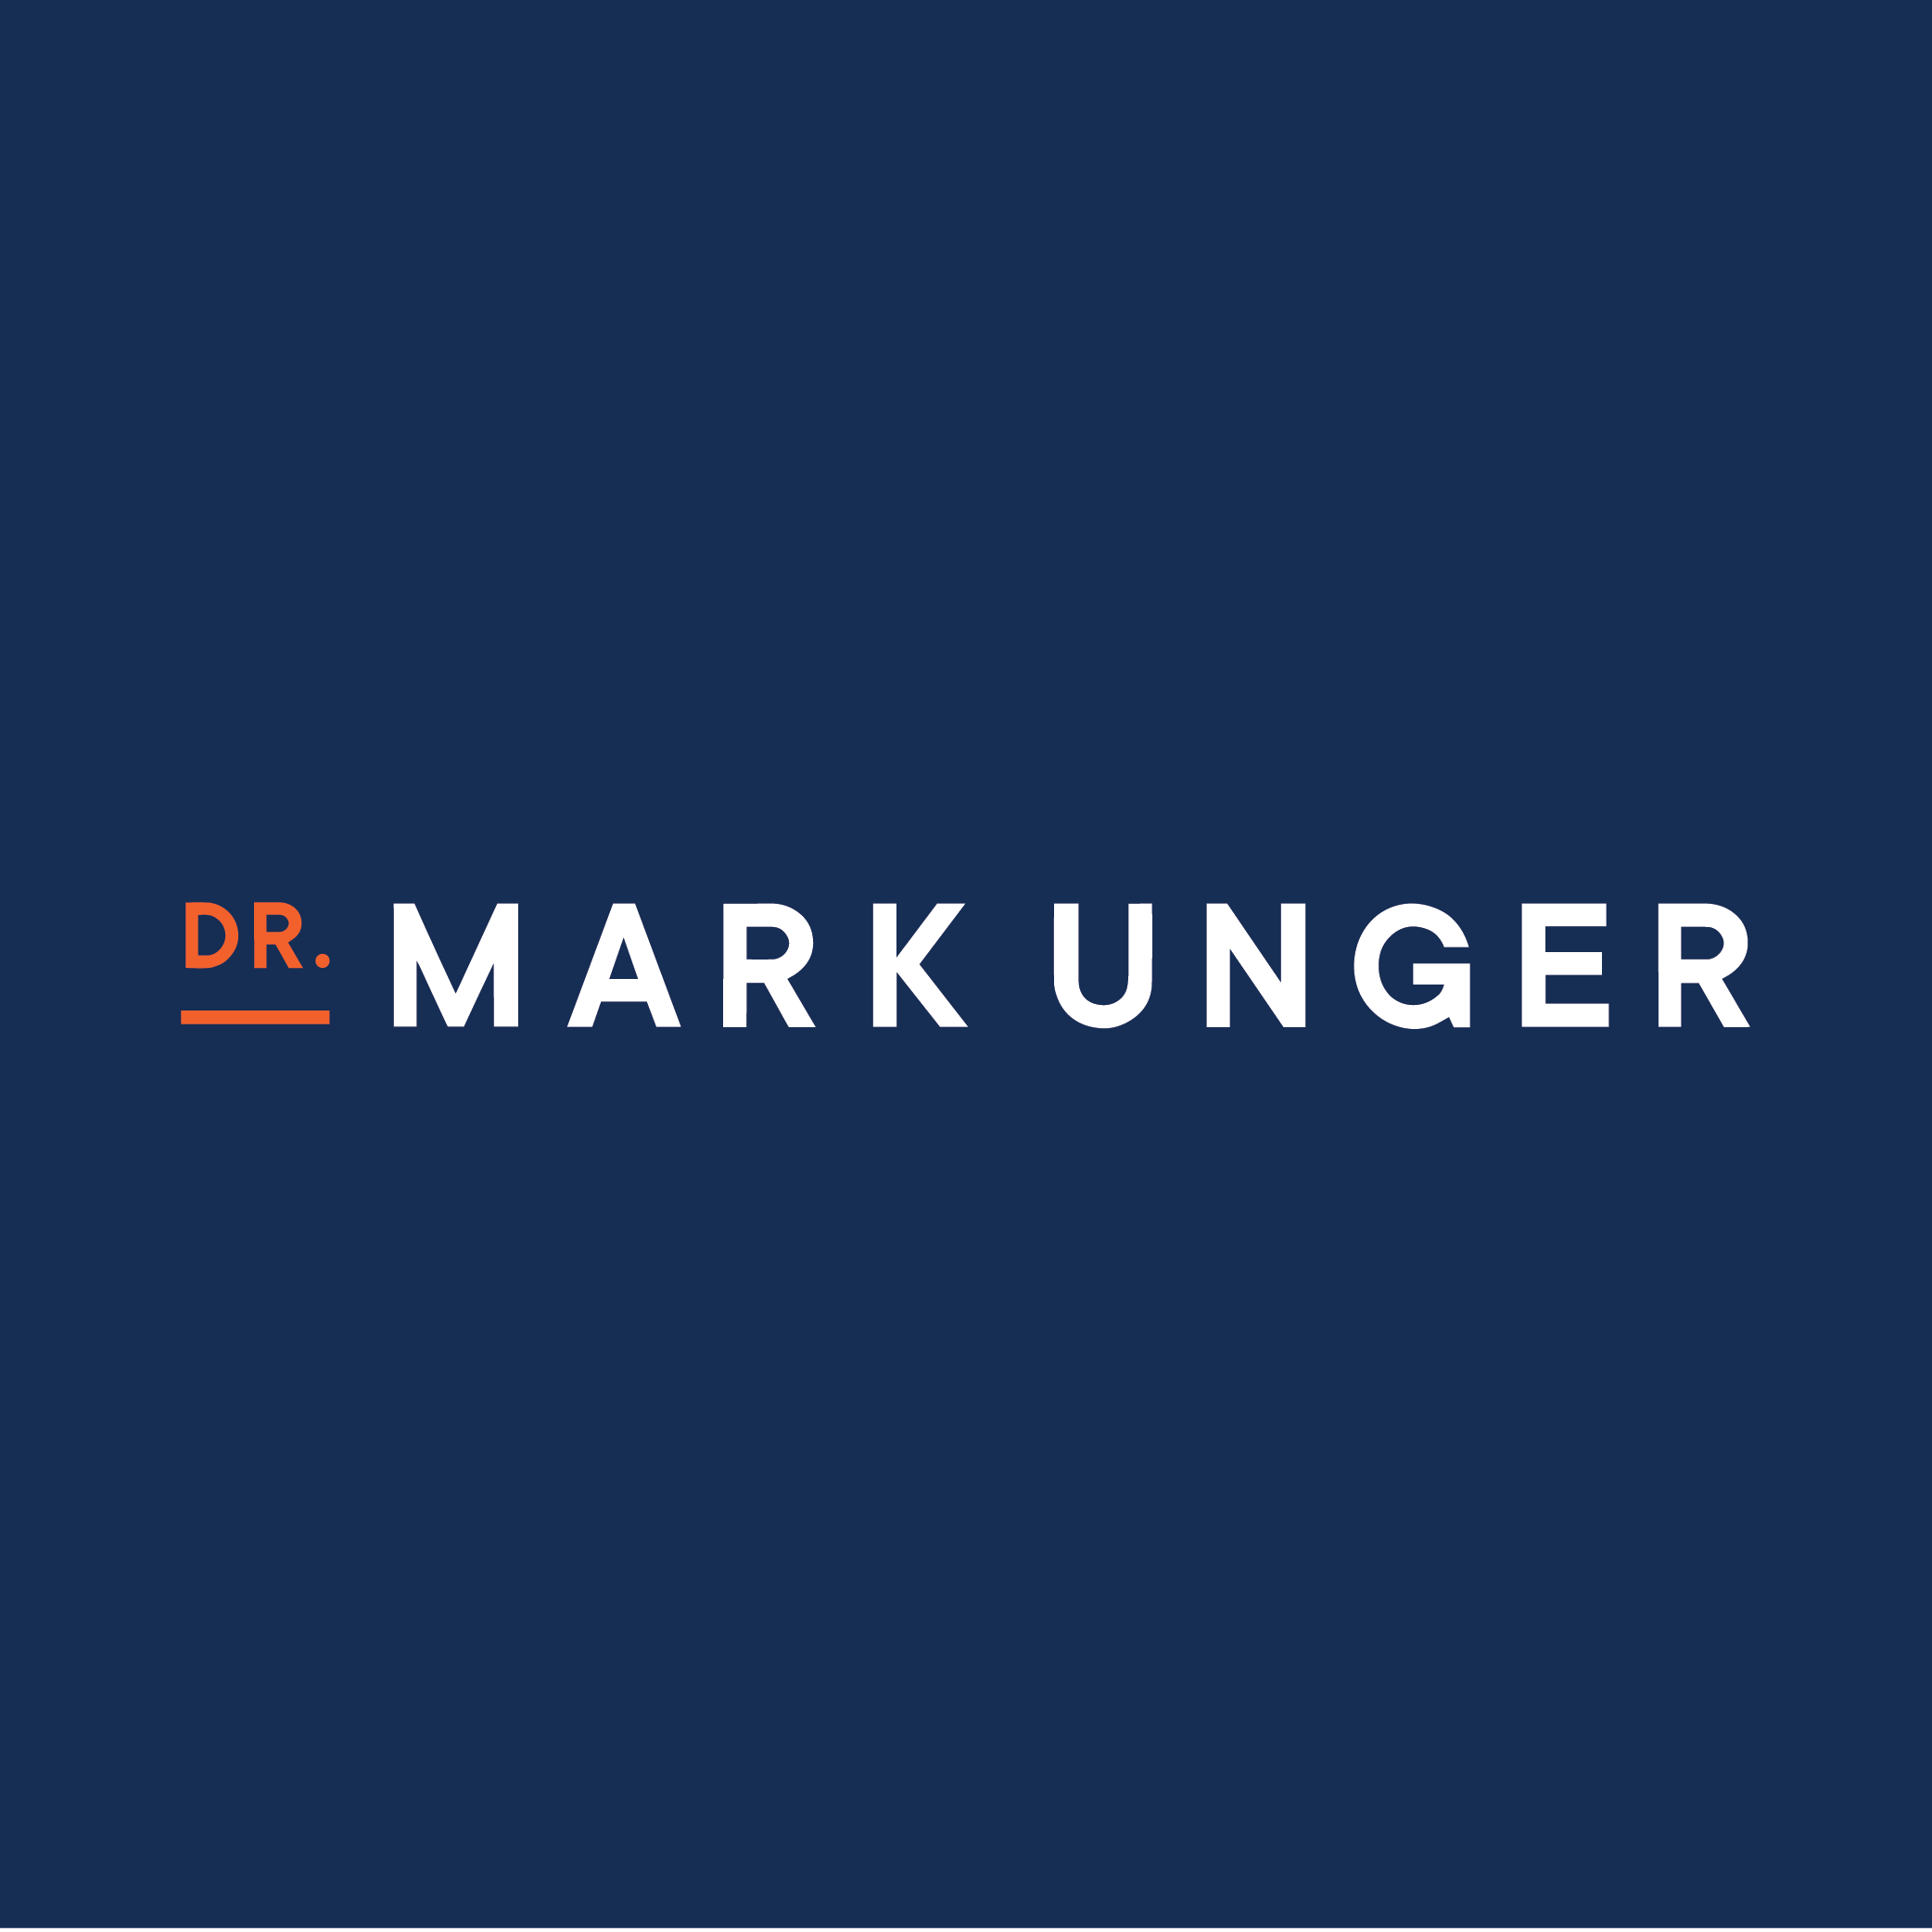 mark-unger-shareable-graphics-03.png